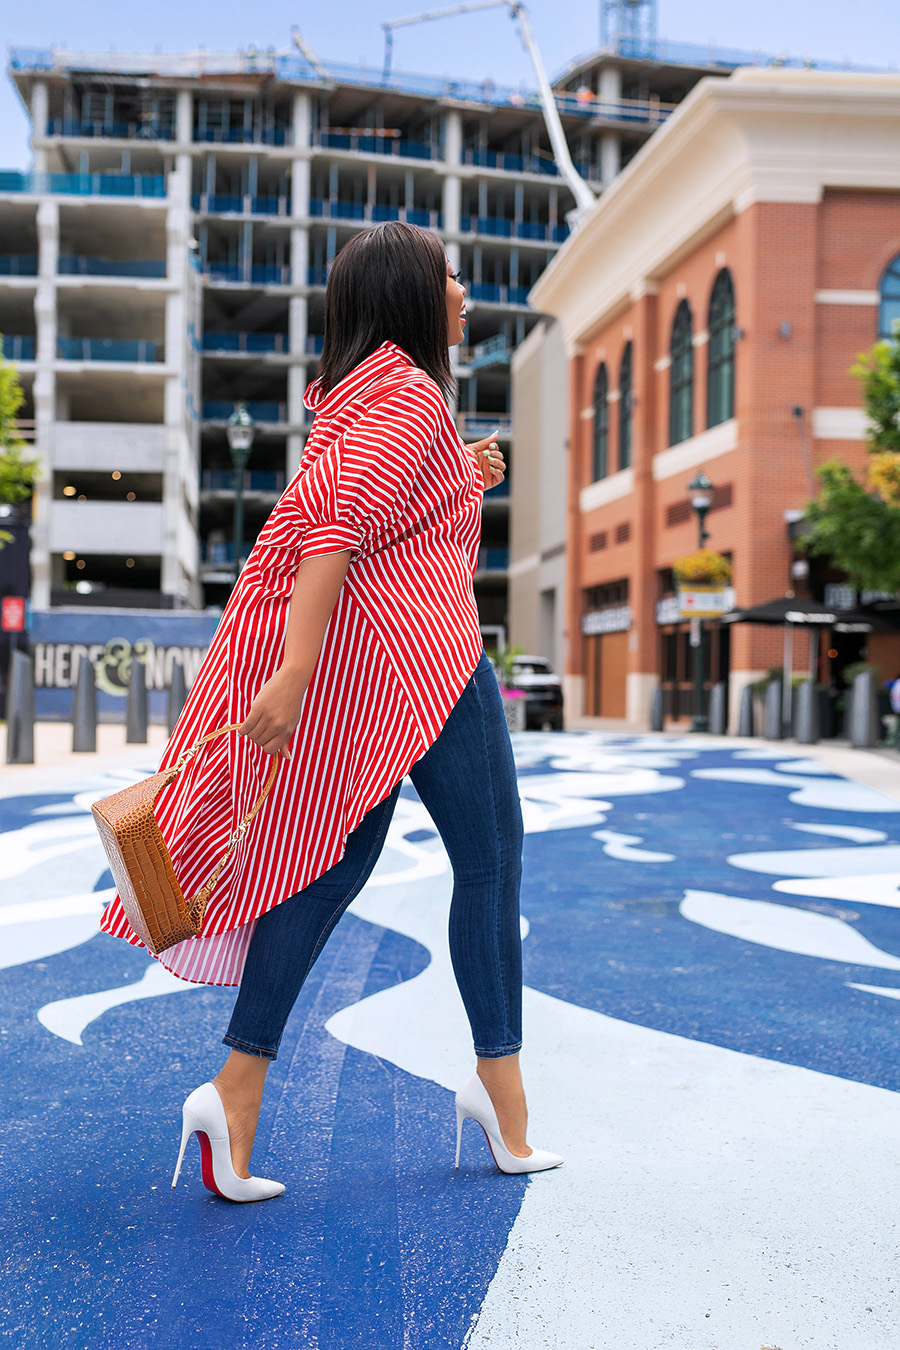 a girl walking away in red and white long summer stripe shirt with blue jeans